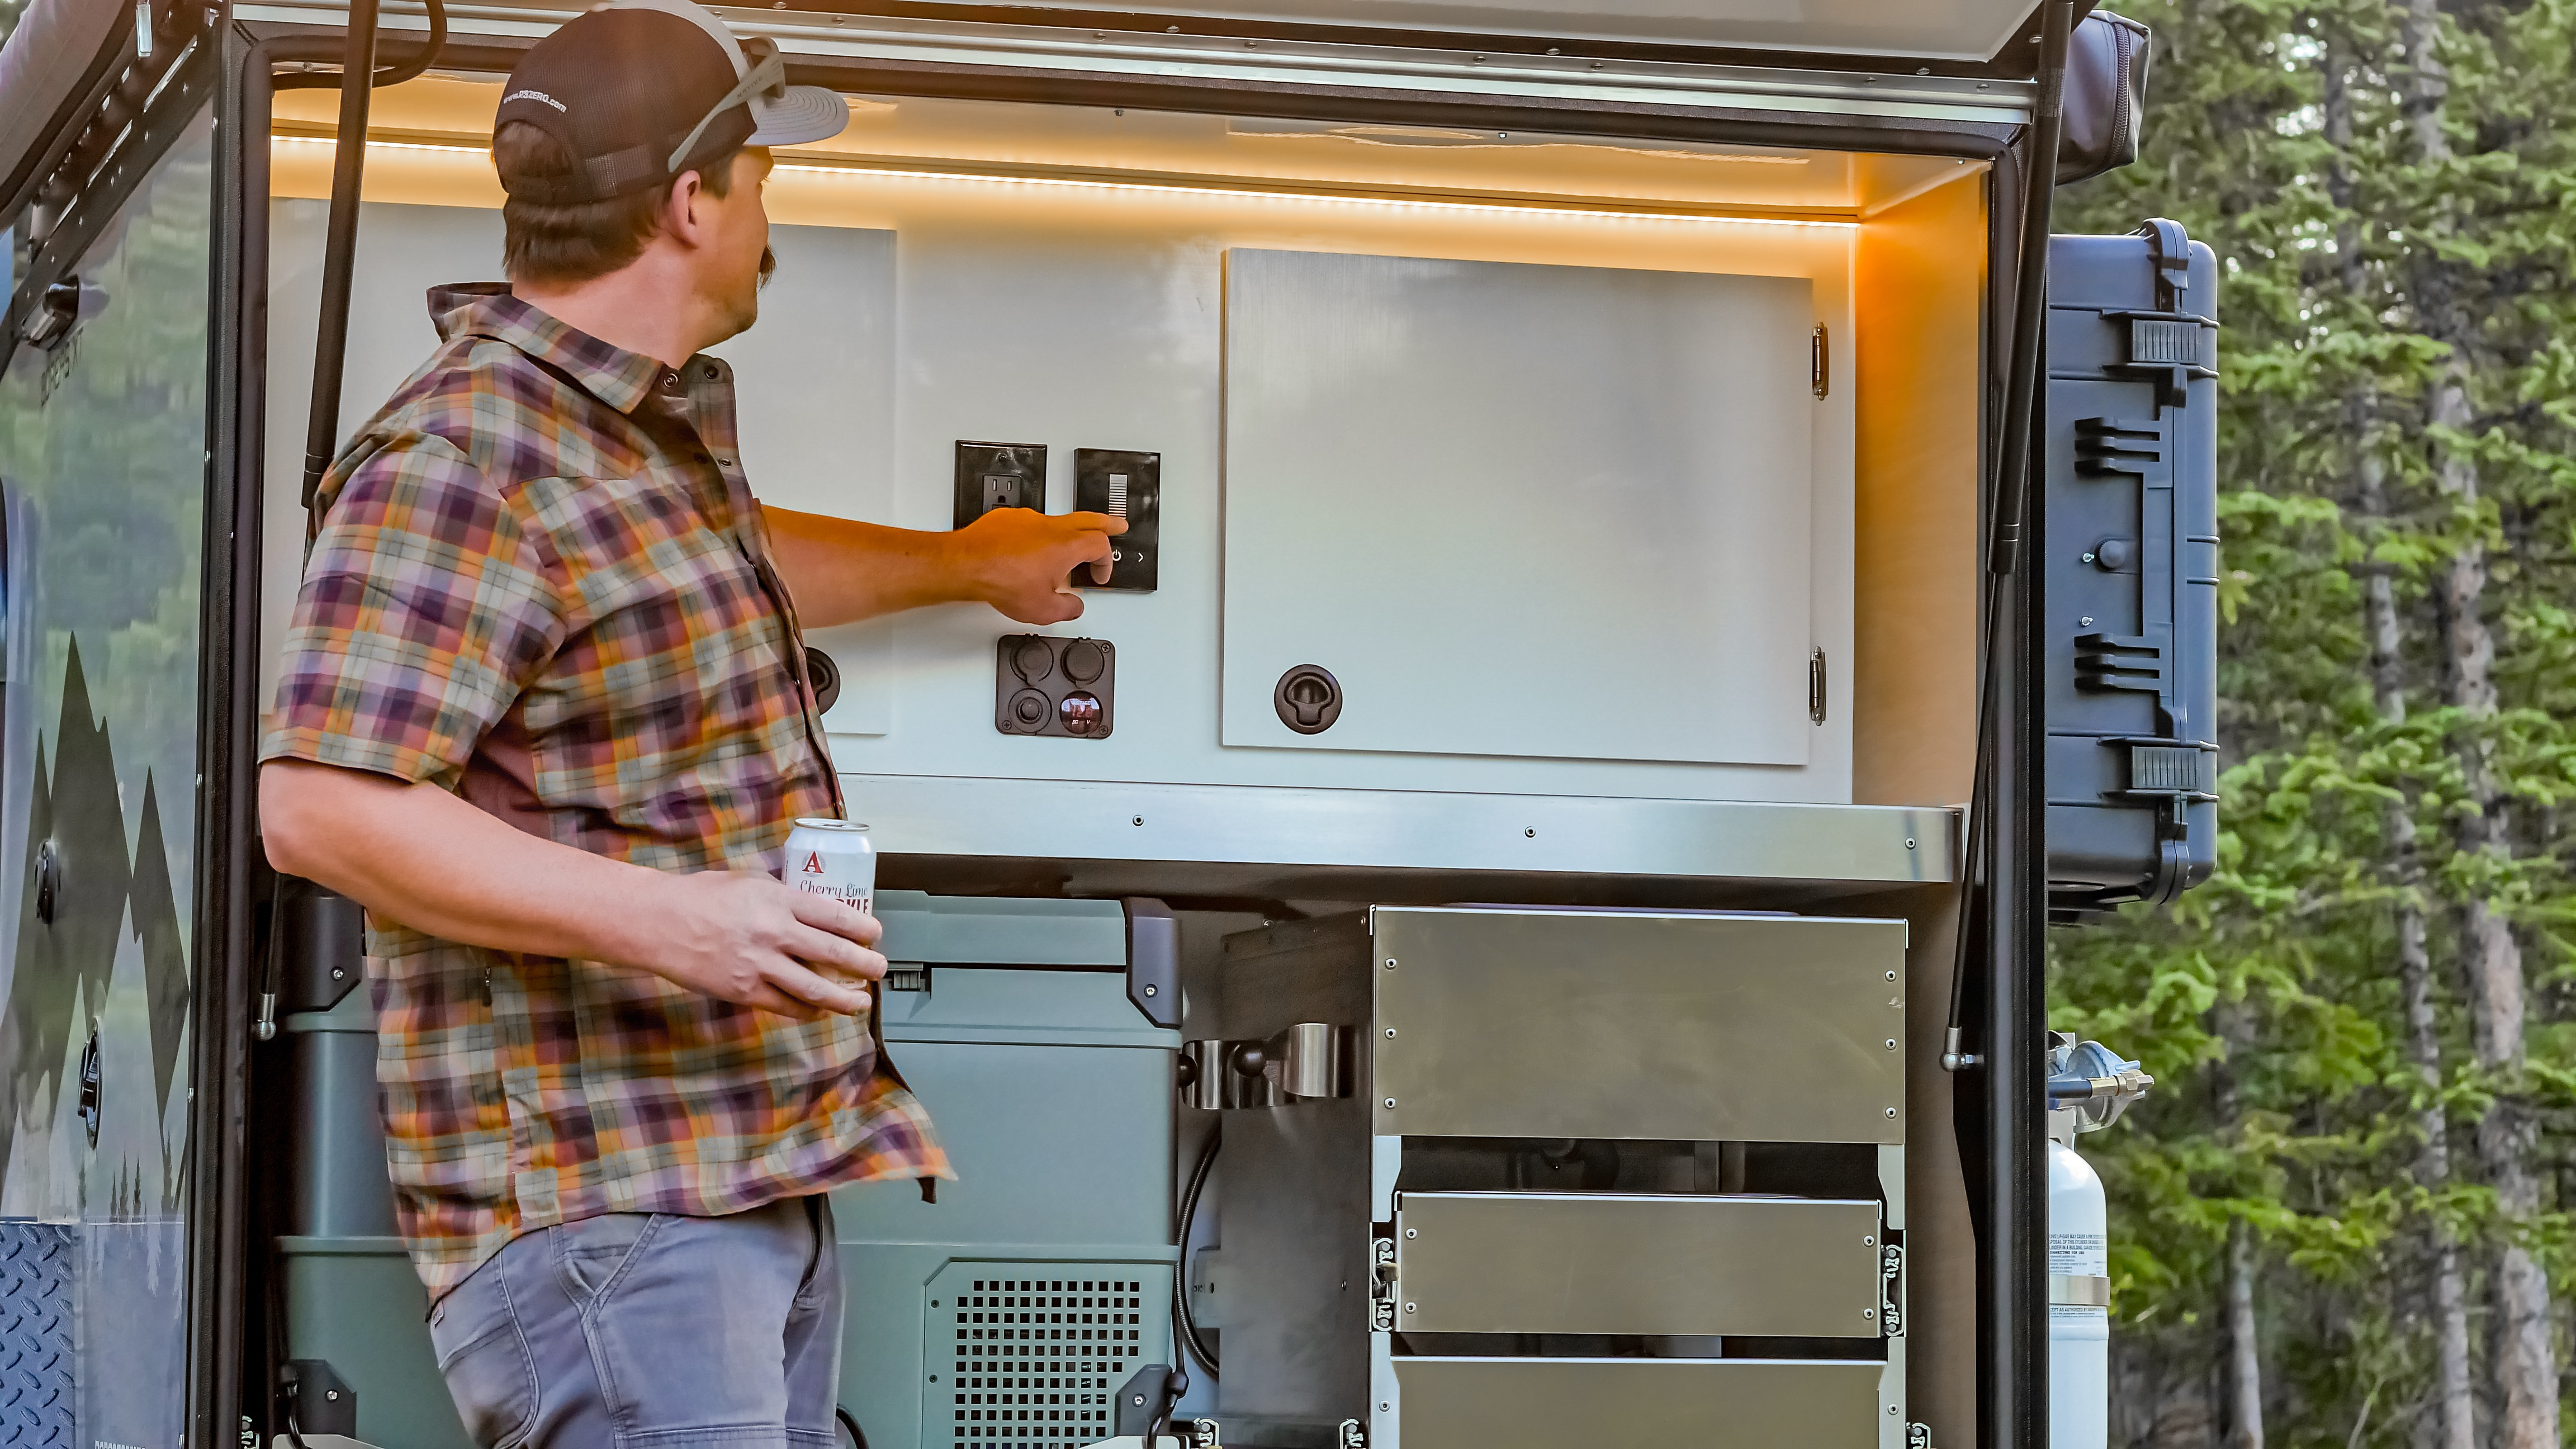 The galley kitchen of an off road camper